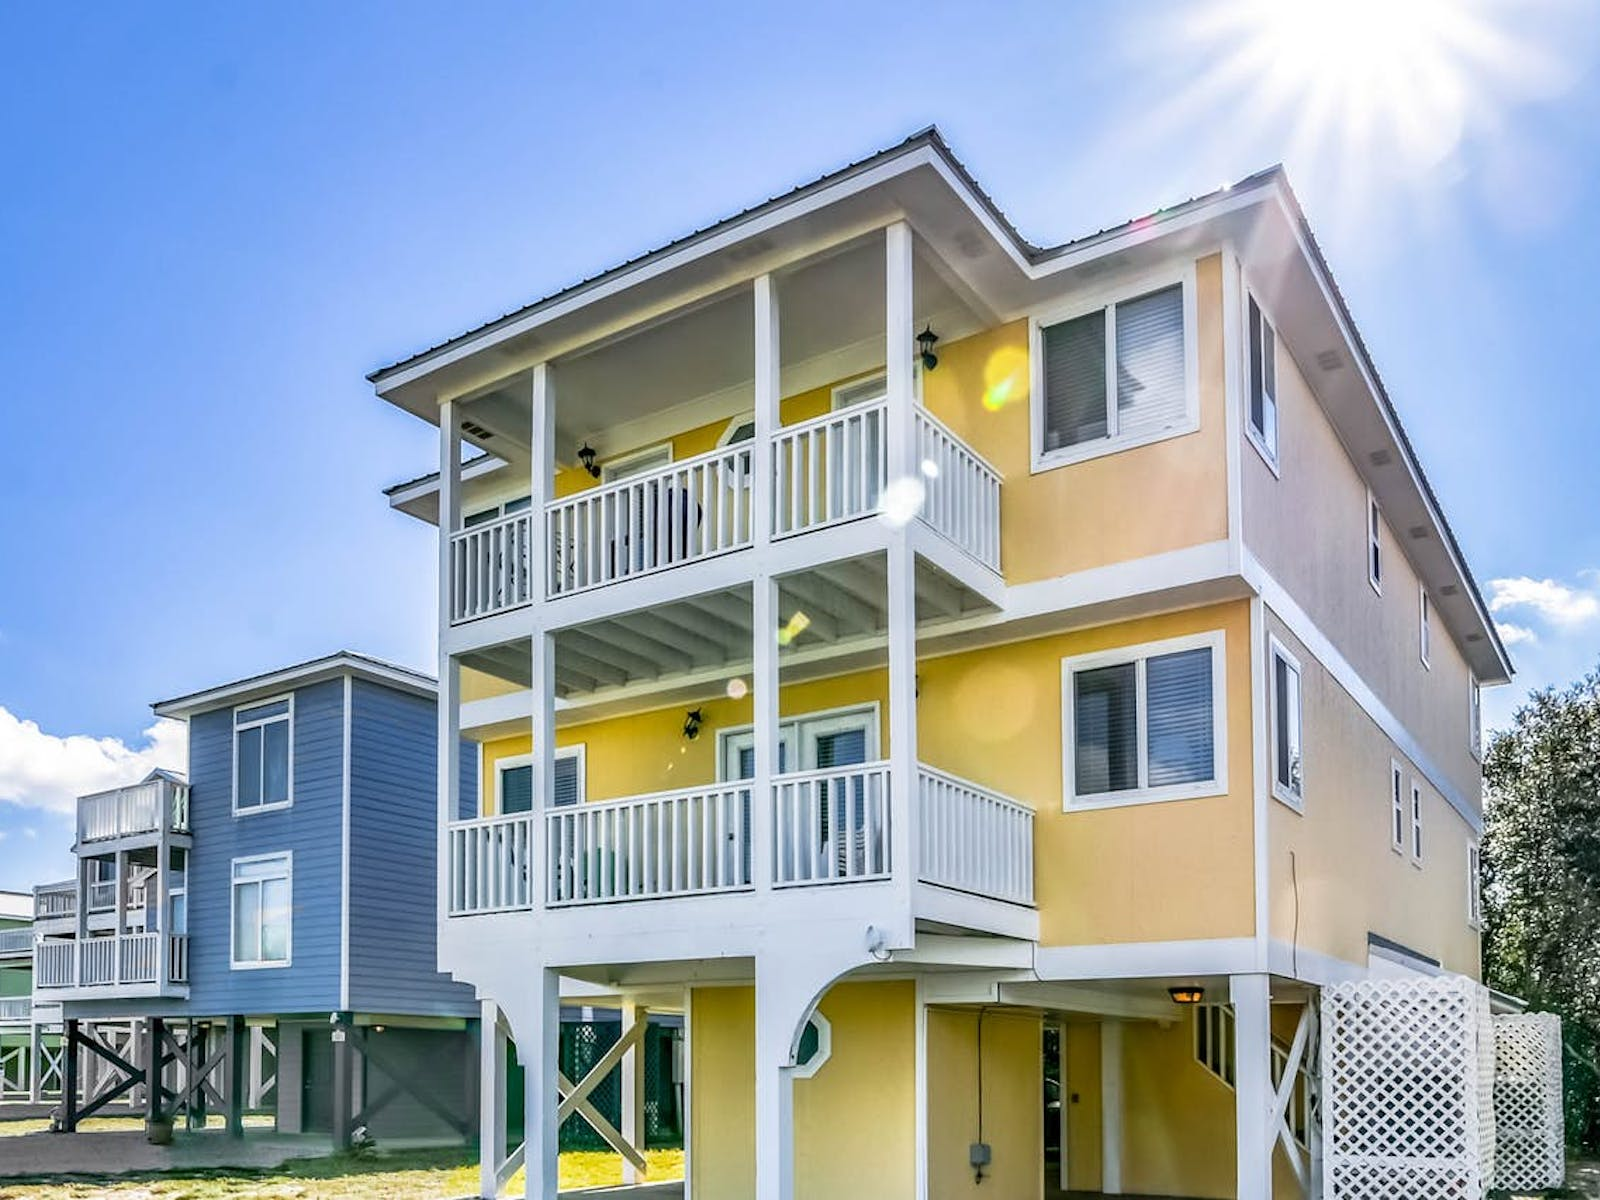 Yellow beach house rental located in Gulf Shores, AL